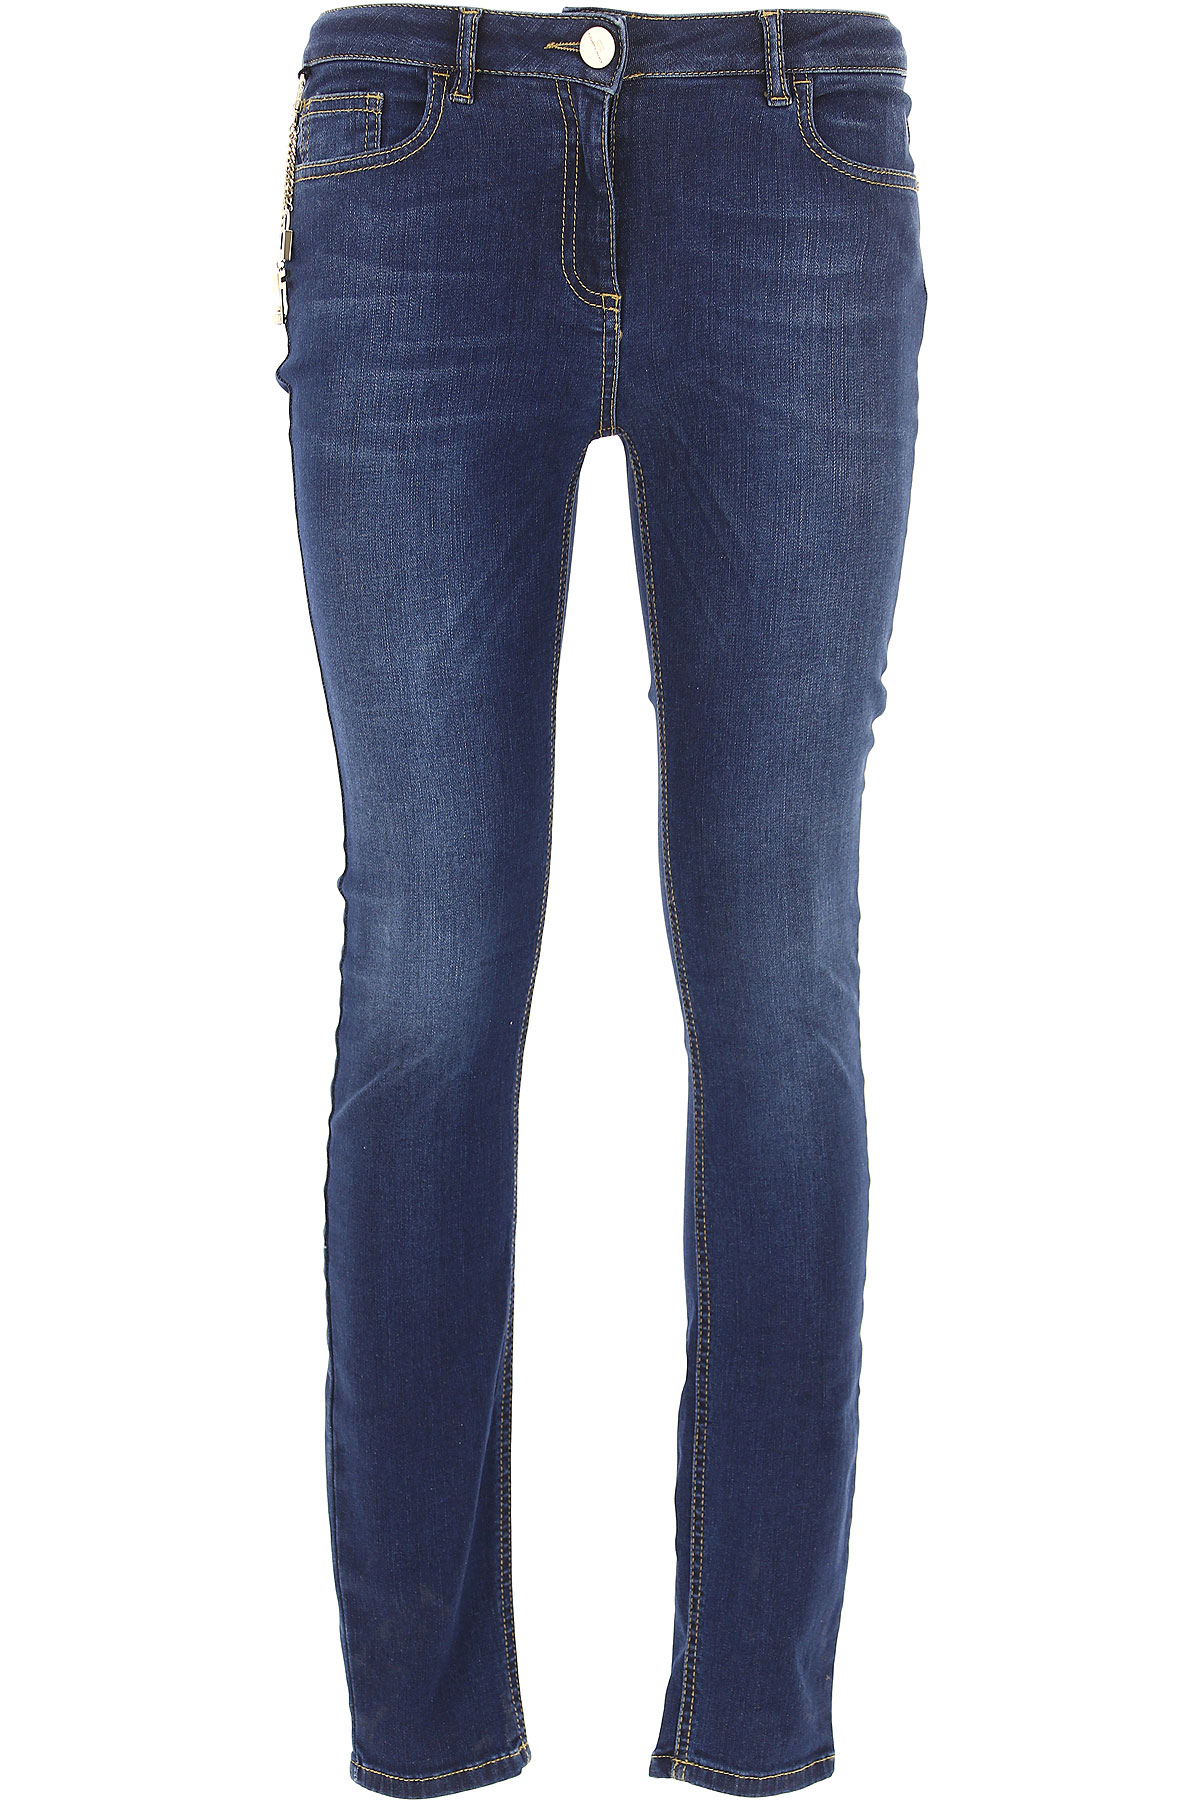 Elisabetta Franchi Jeans On Sale, Denim Blue, Cotton, 2017, 29 30 31